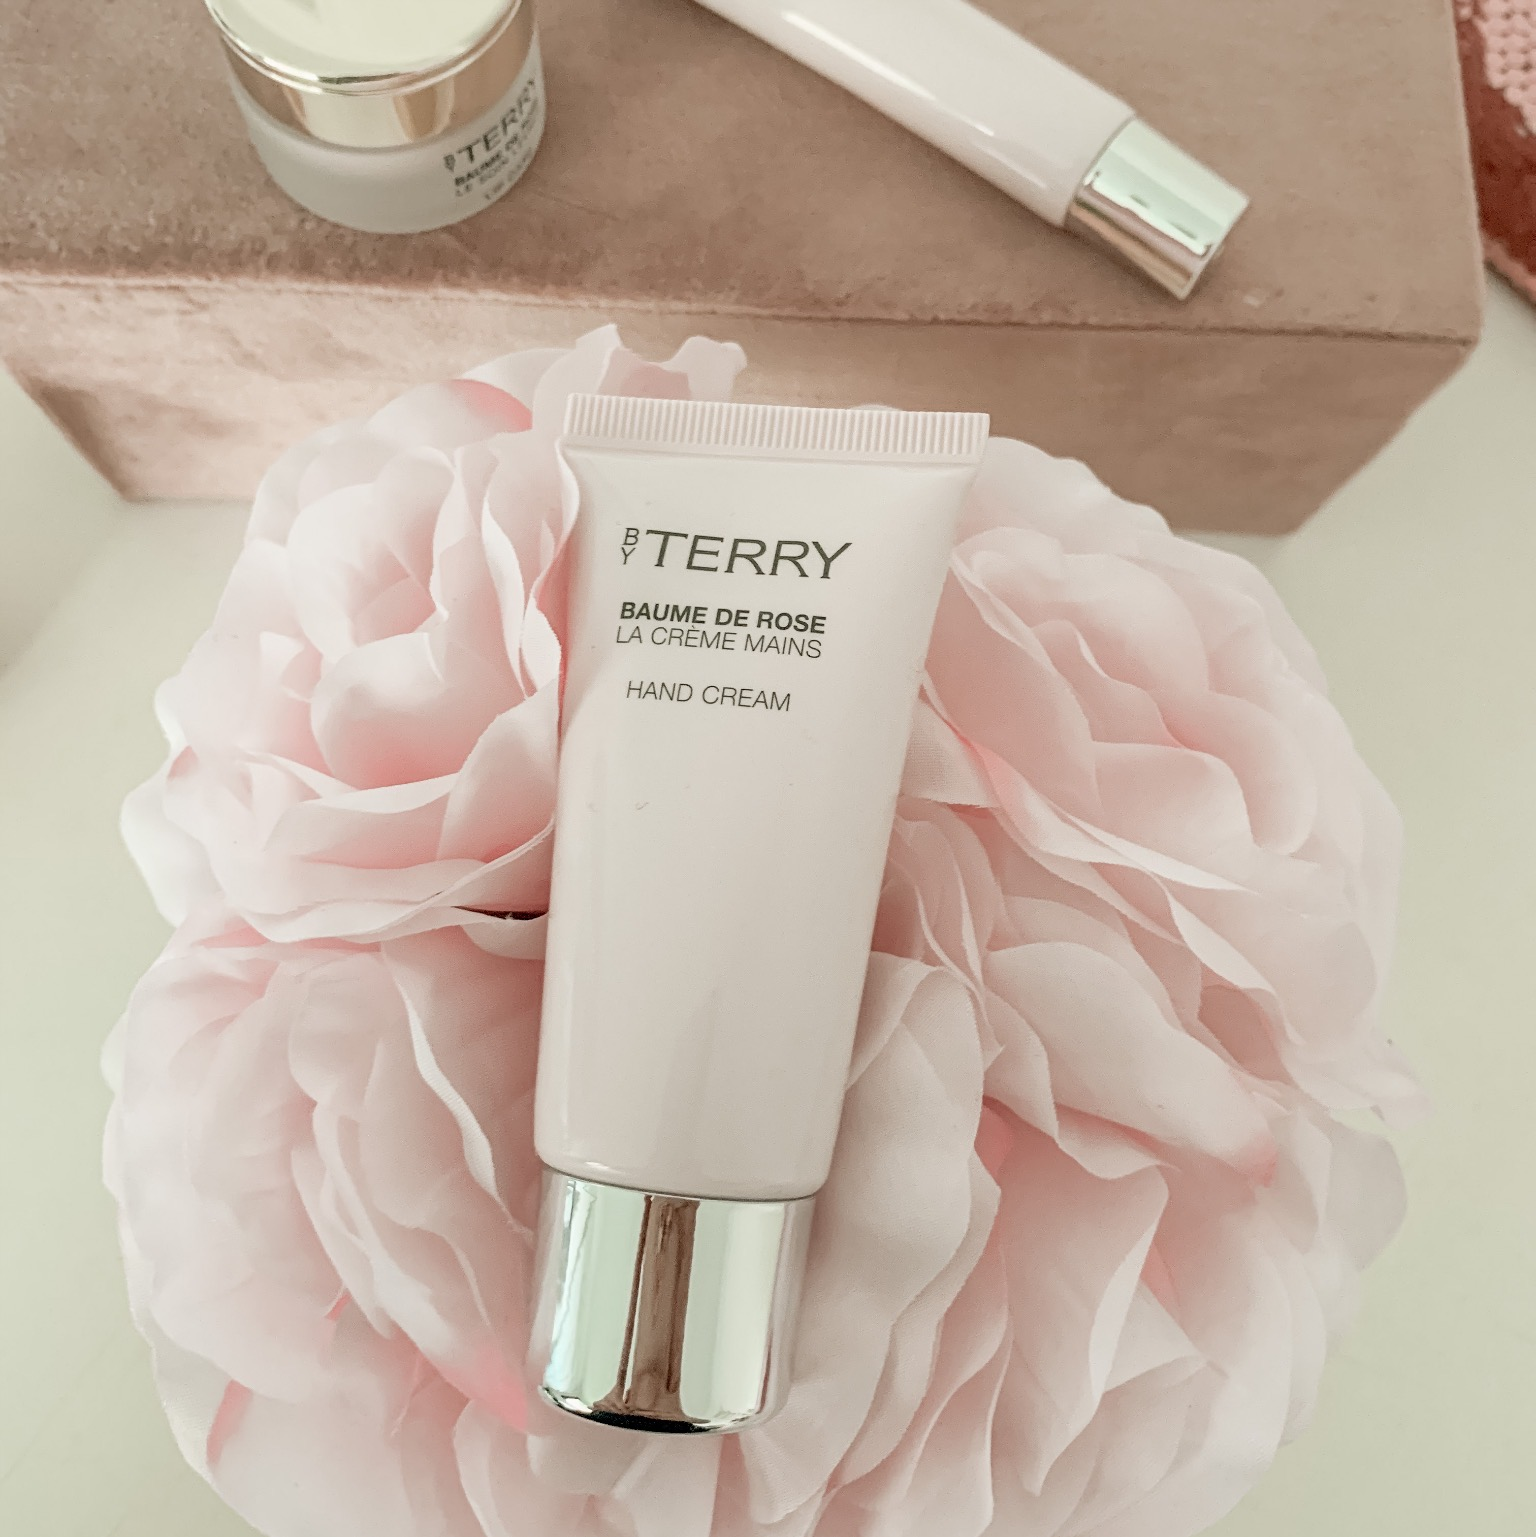 a pale pink tube of hand cream sitting on top of a pale pink bunch of flowers